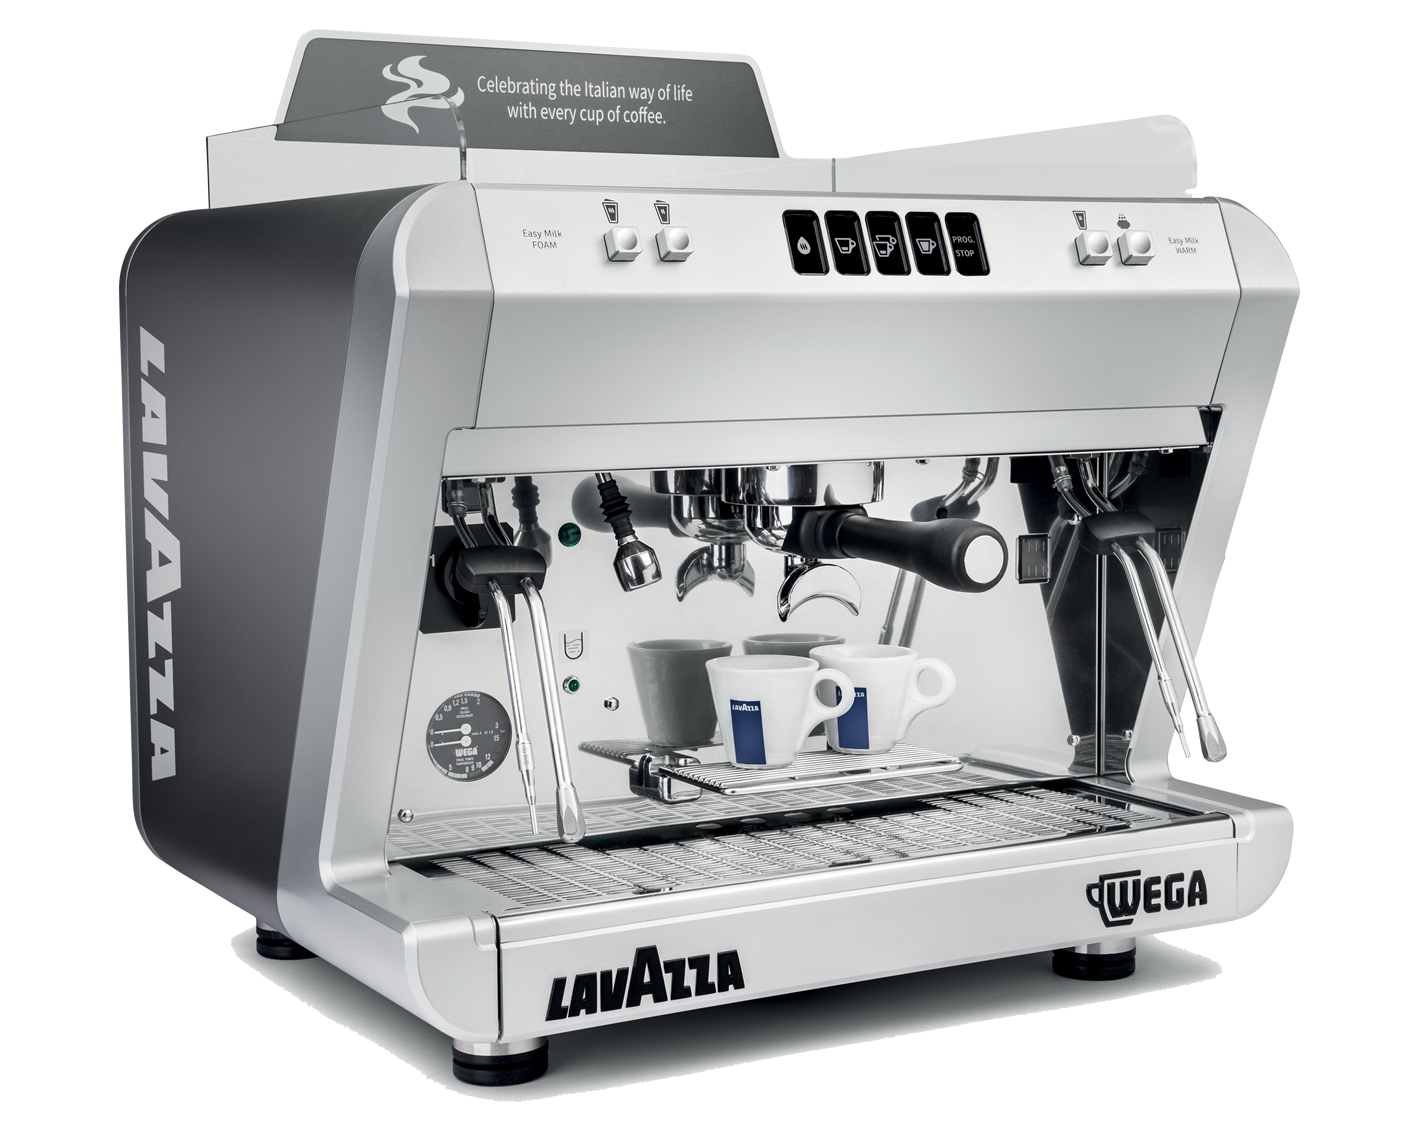 New Lavazza Blue Lb4700 Range Alba Beverage Company